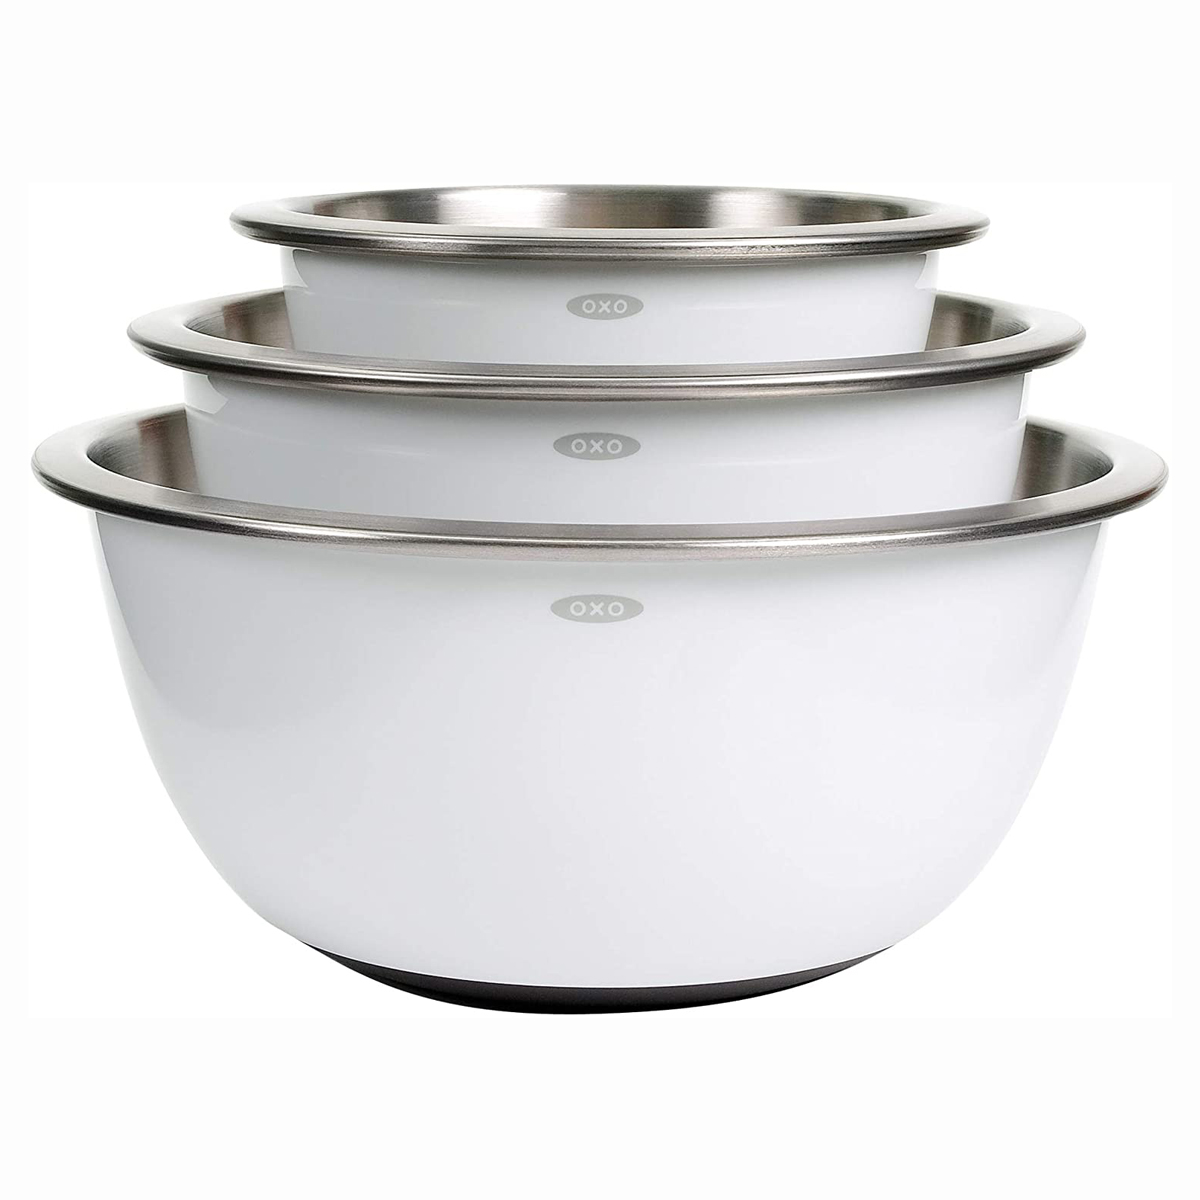 OXO Grips stainless steel mixing bowls in white